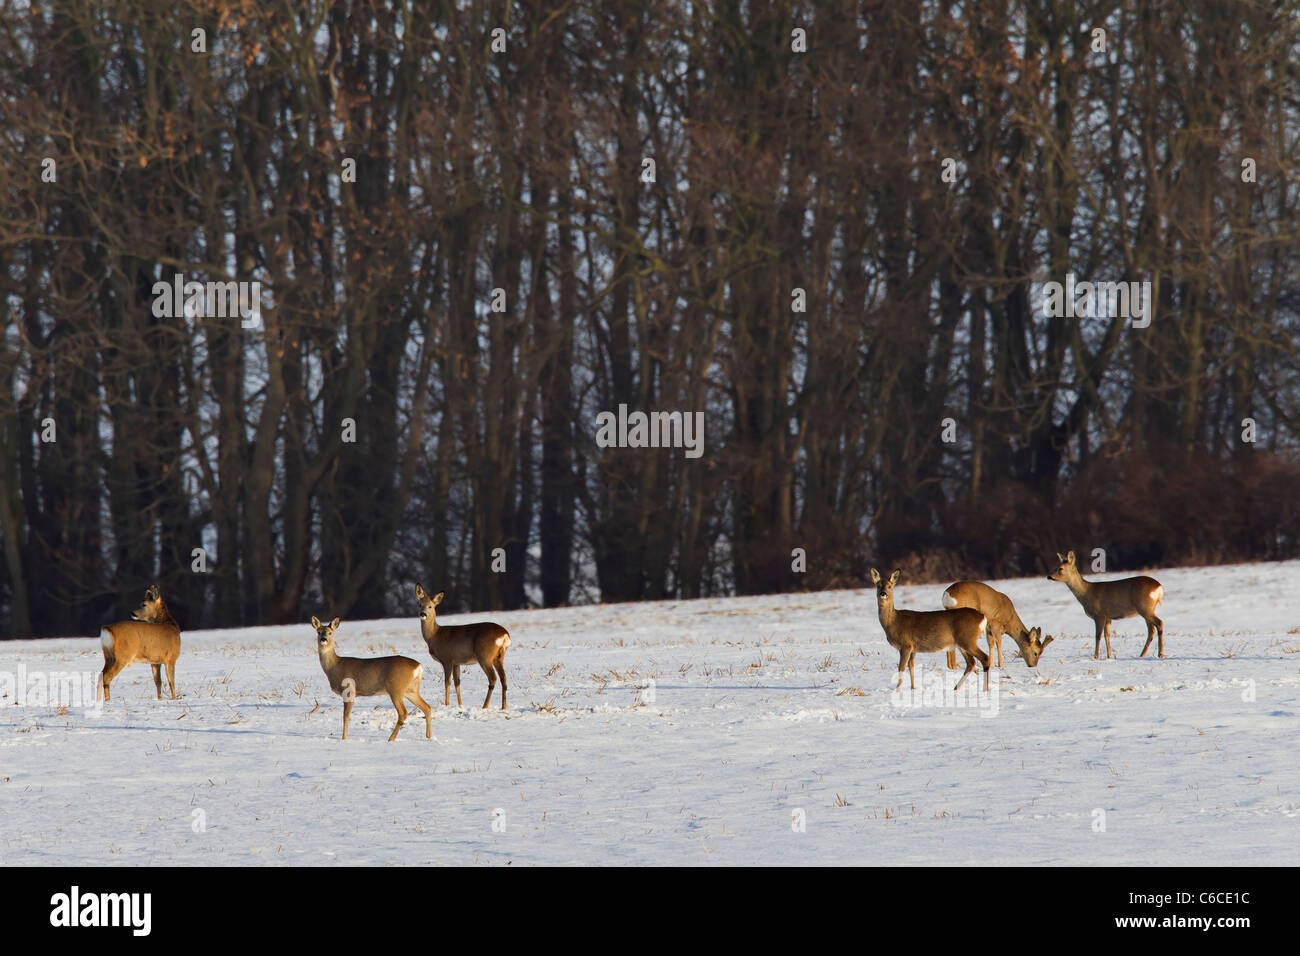 Roe deer (Capreolus capreolus) herd feeding in snow covered field along forest in winter, Germany Stock Photo